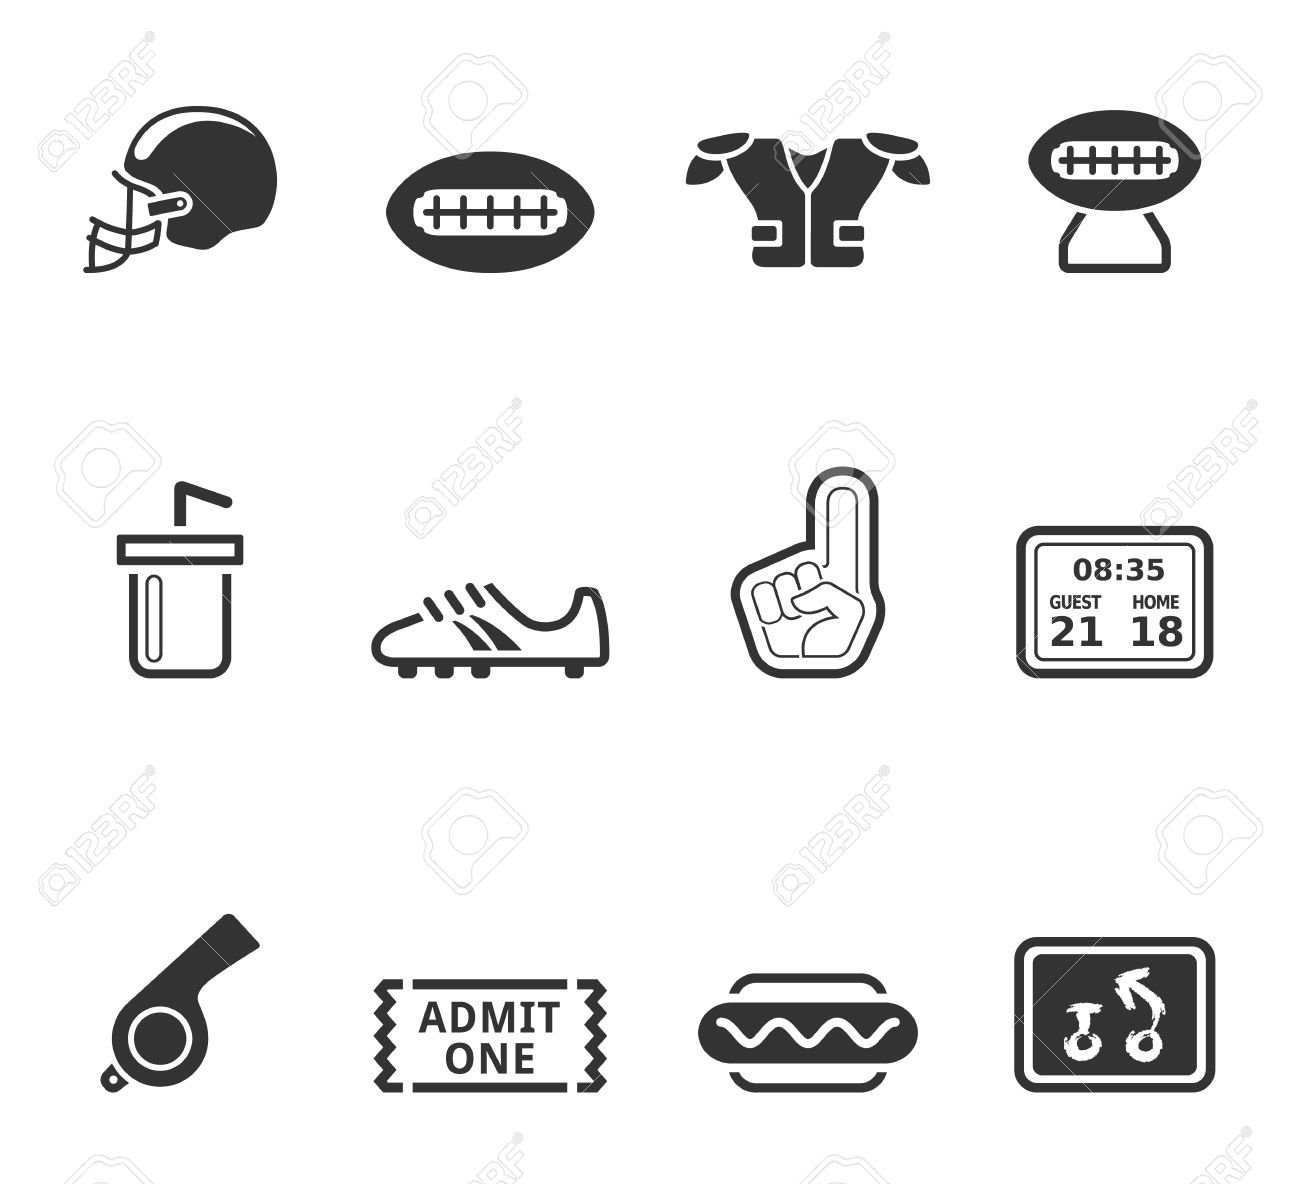 American Football Icon Series In Single Color Royalty Free Cliparts